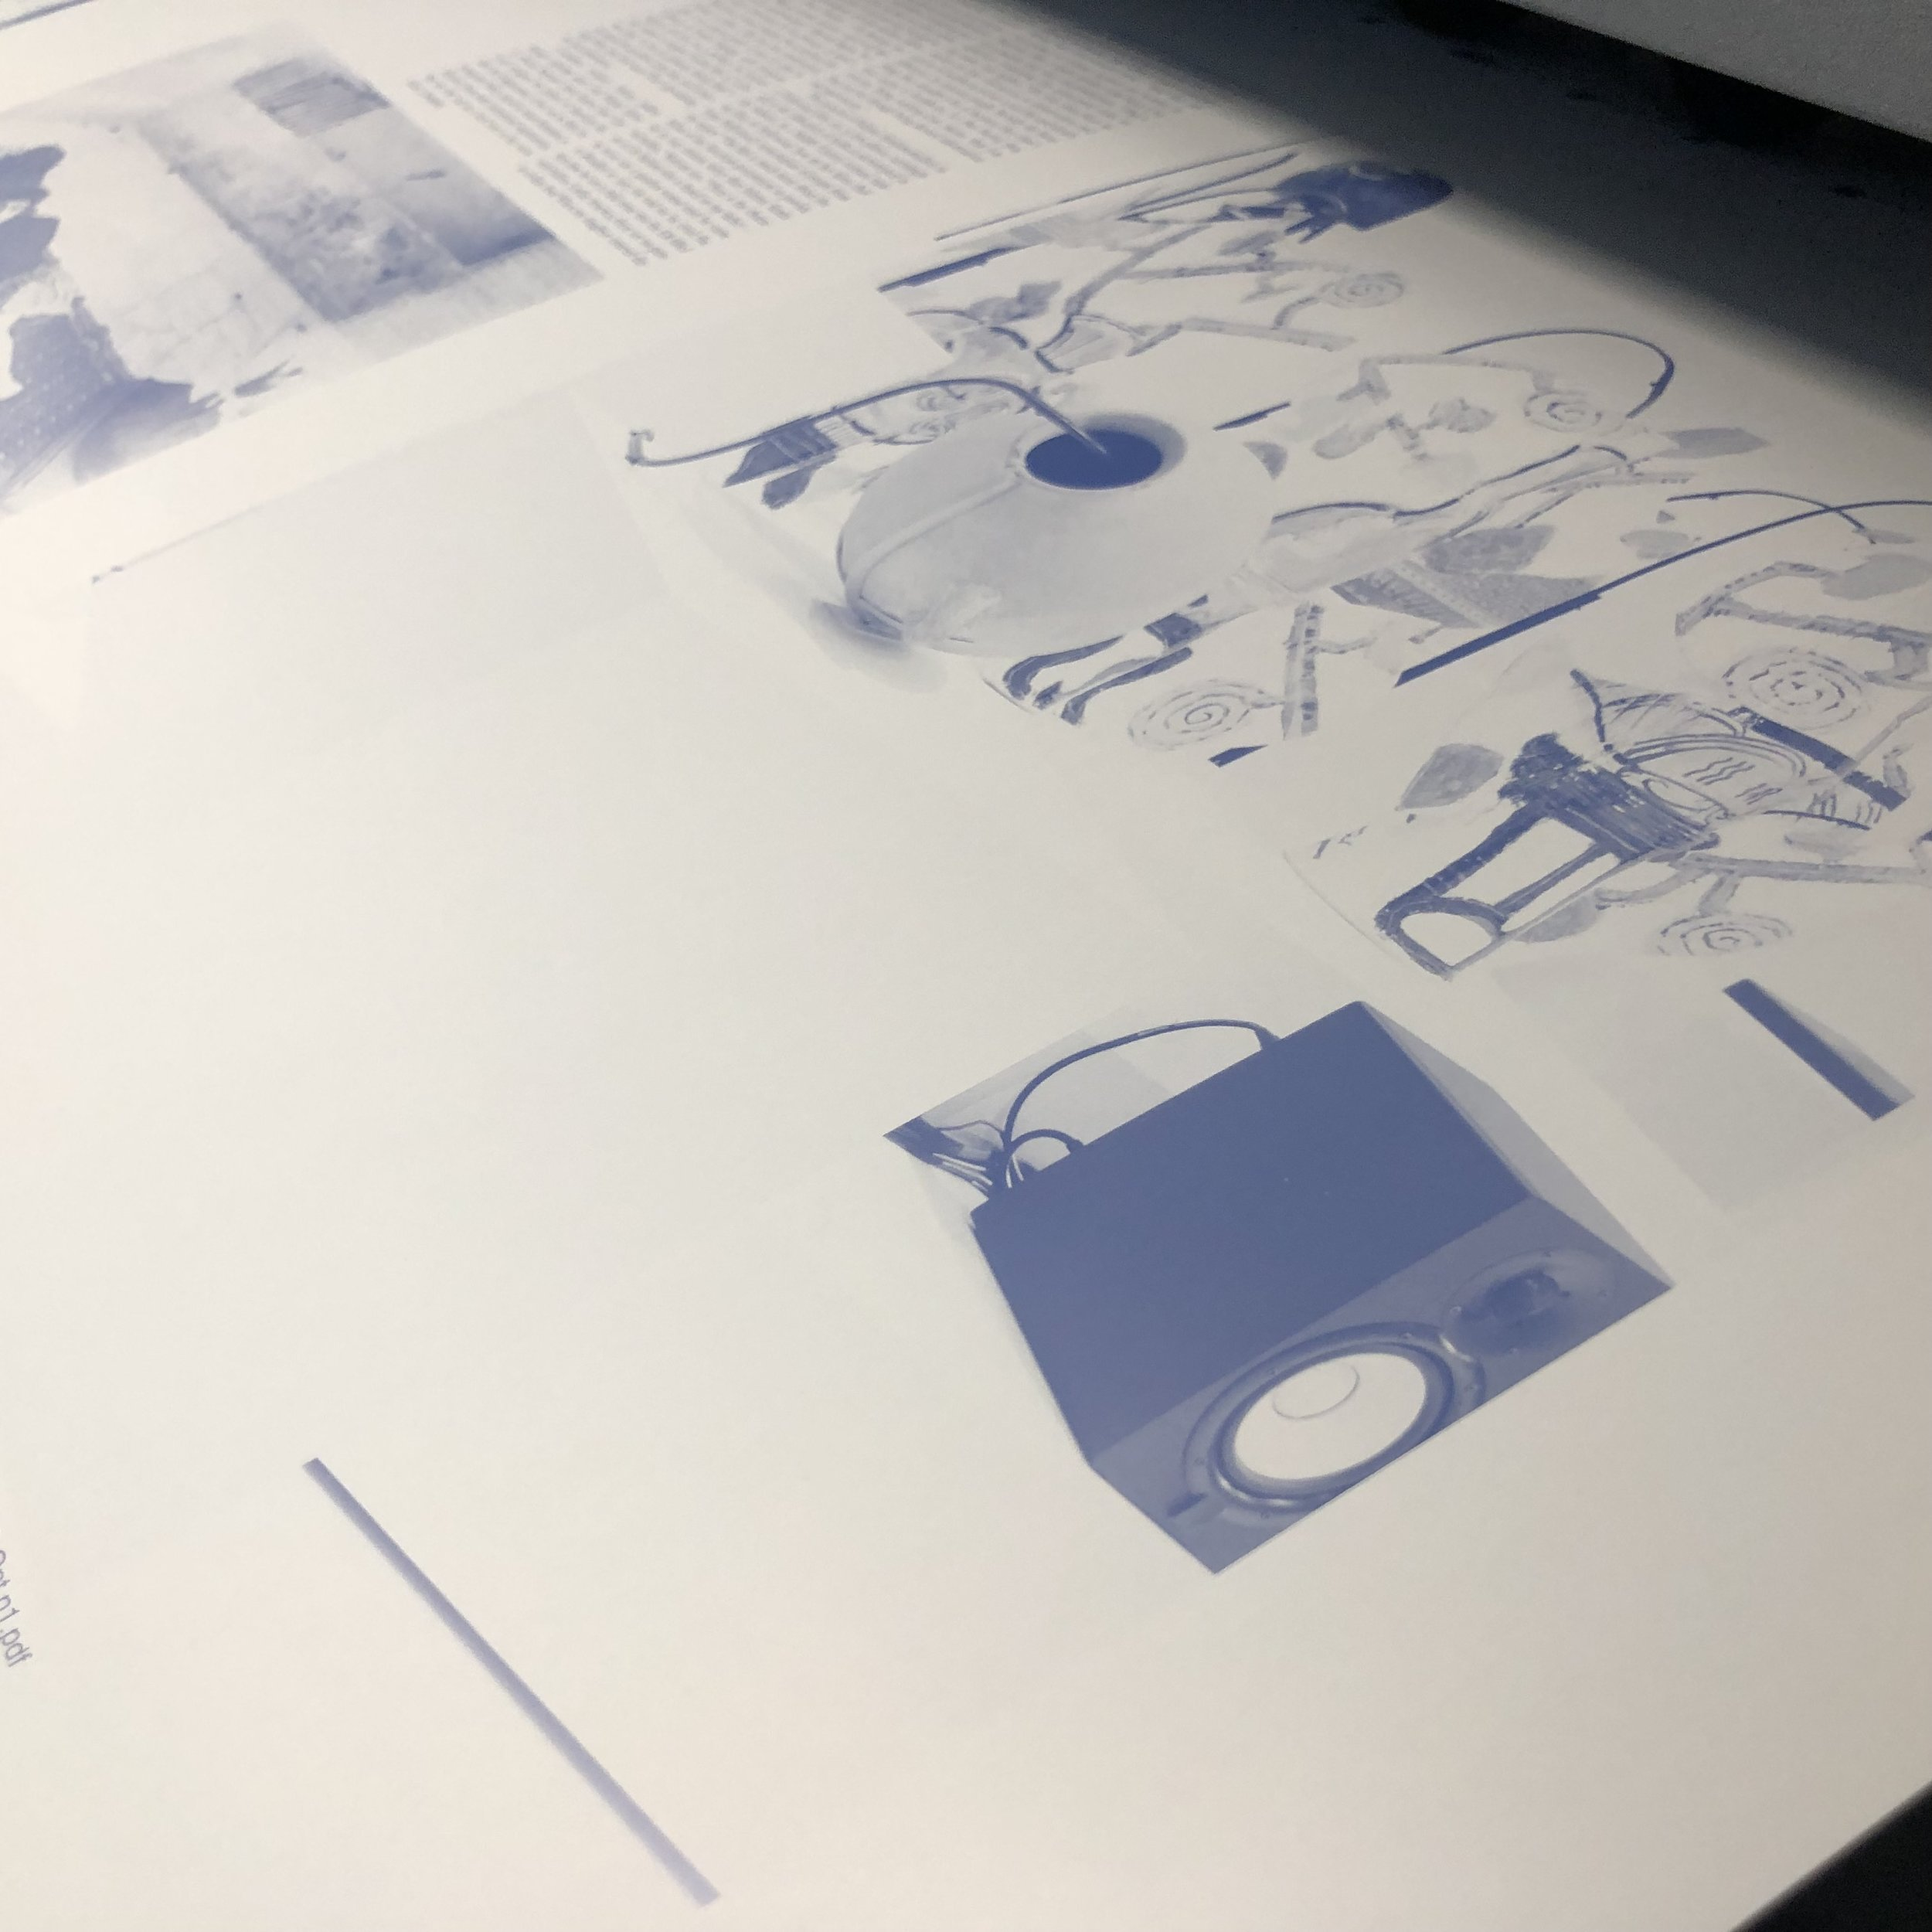 Part of a spread on an off-set litho plate having been etched.